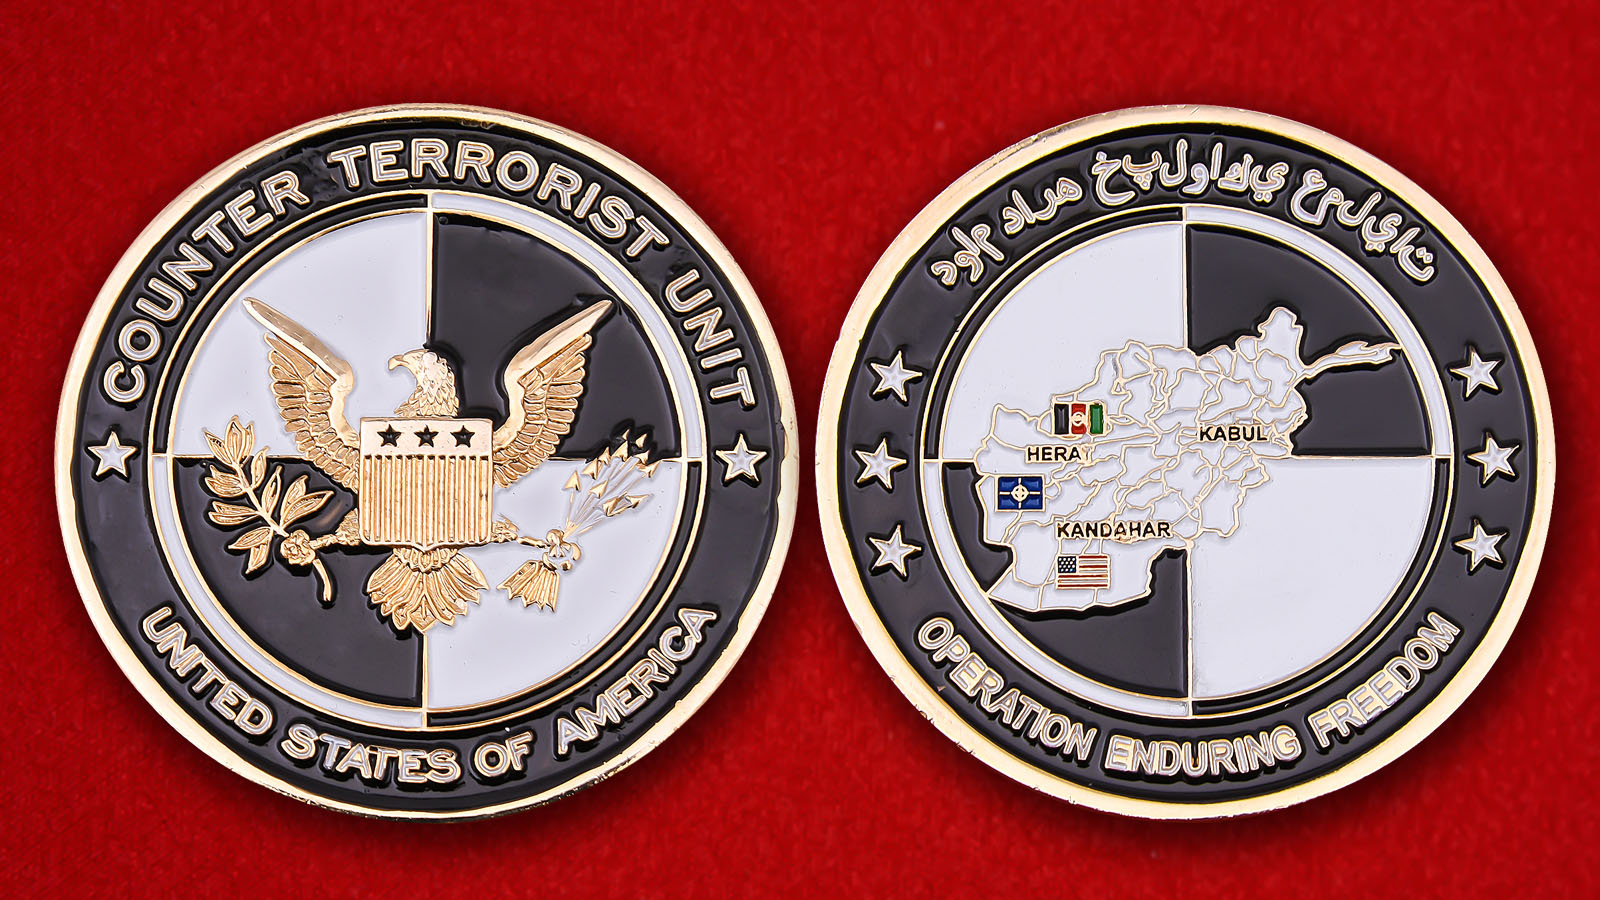 US Army Counter Terrorist Unit Operation Enduring Freedom Challenge Coin